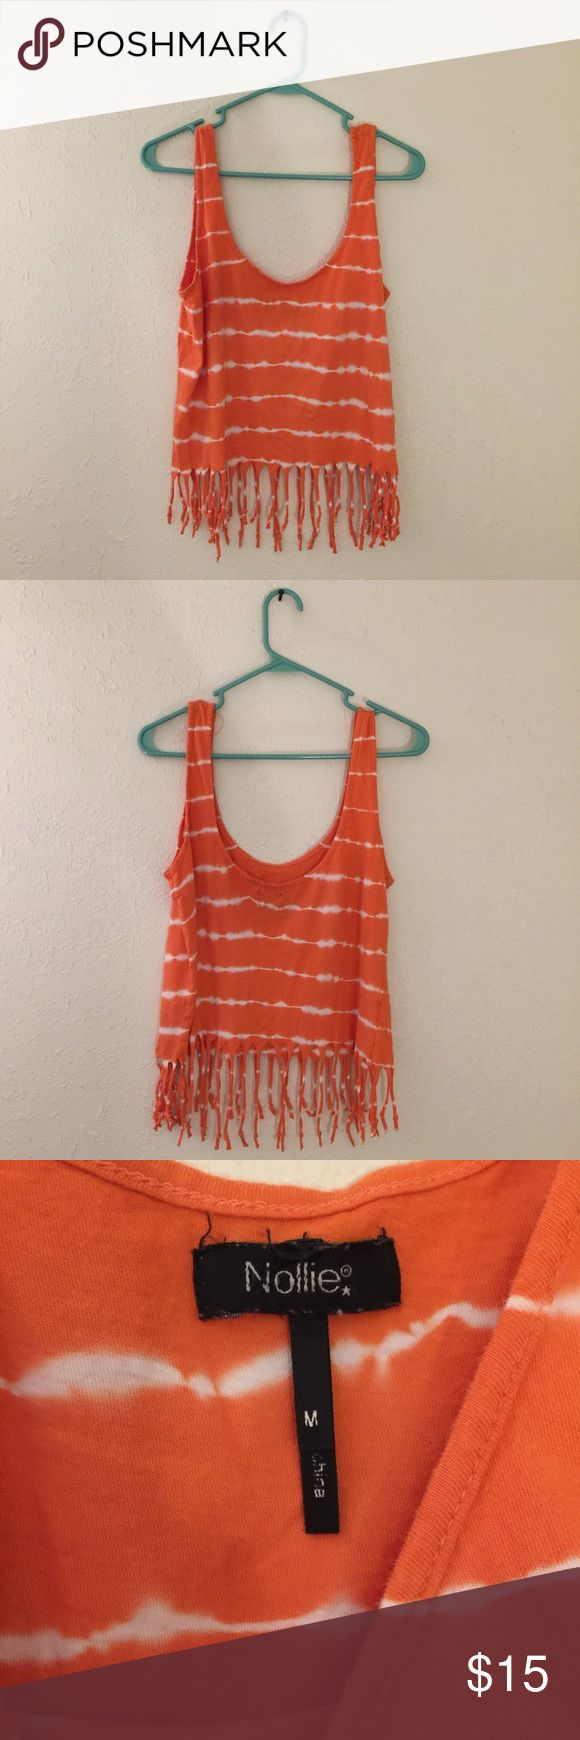 NOLLIE Fringe Orange Tie Dye Crop Top NOLLIE  Orange with white tie dye, knotted fringes on bottom. Looks new- only worn to a festival once. Medium Size. Tops Crop Tops